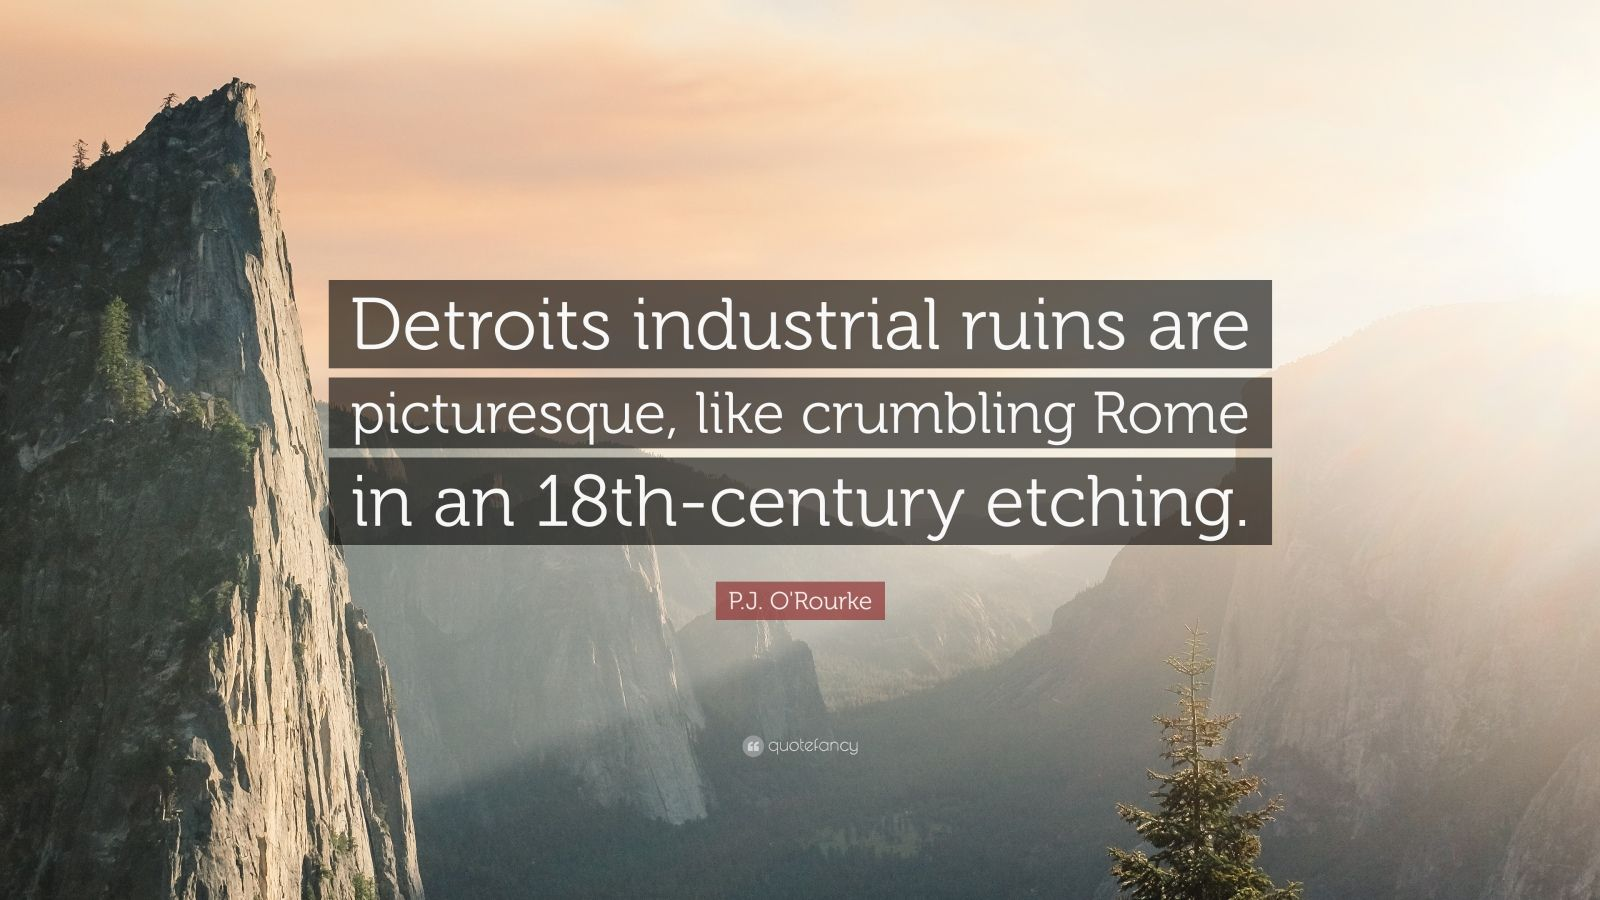 """P.J. O'Rourke Quote: """"Detroits industrial ruins are picturesque, like crumbling Rome in an 18th-century etching."""""""